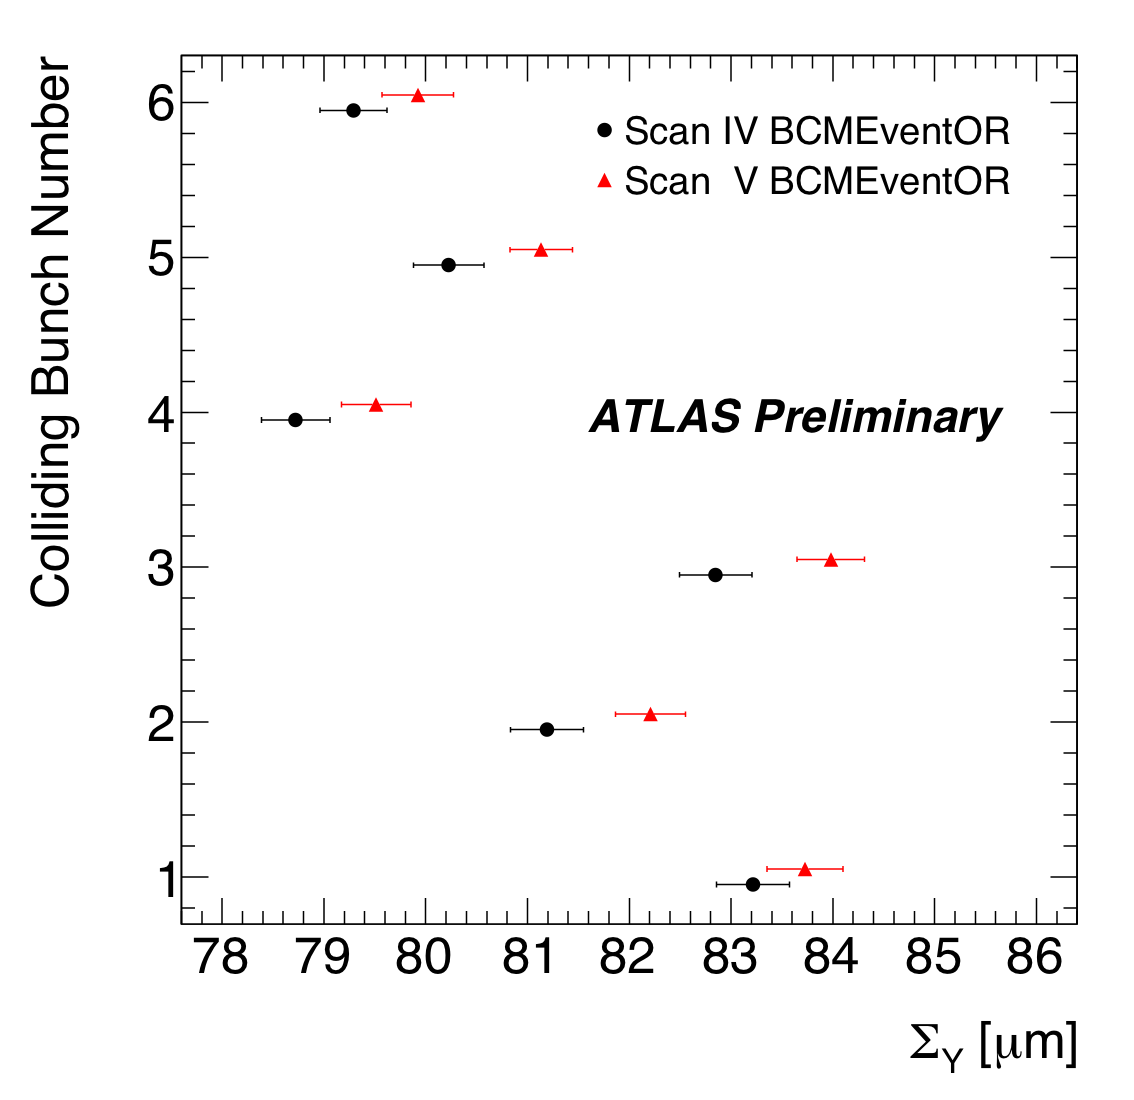 https://atlas.web.cern.ch/Atlas/GROUPS/DATAPREPARATION/PublicPlots/2010/Luminosity/BCM/SigmaYvsBCID_BCM.png